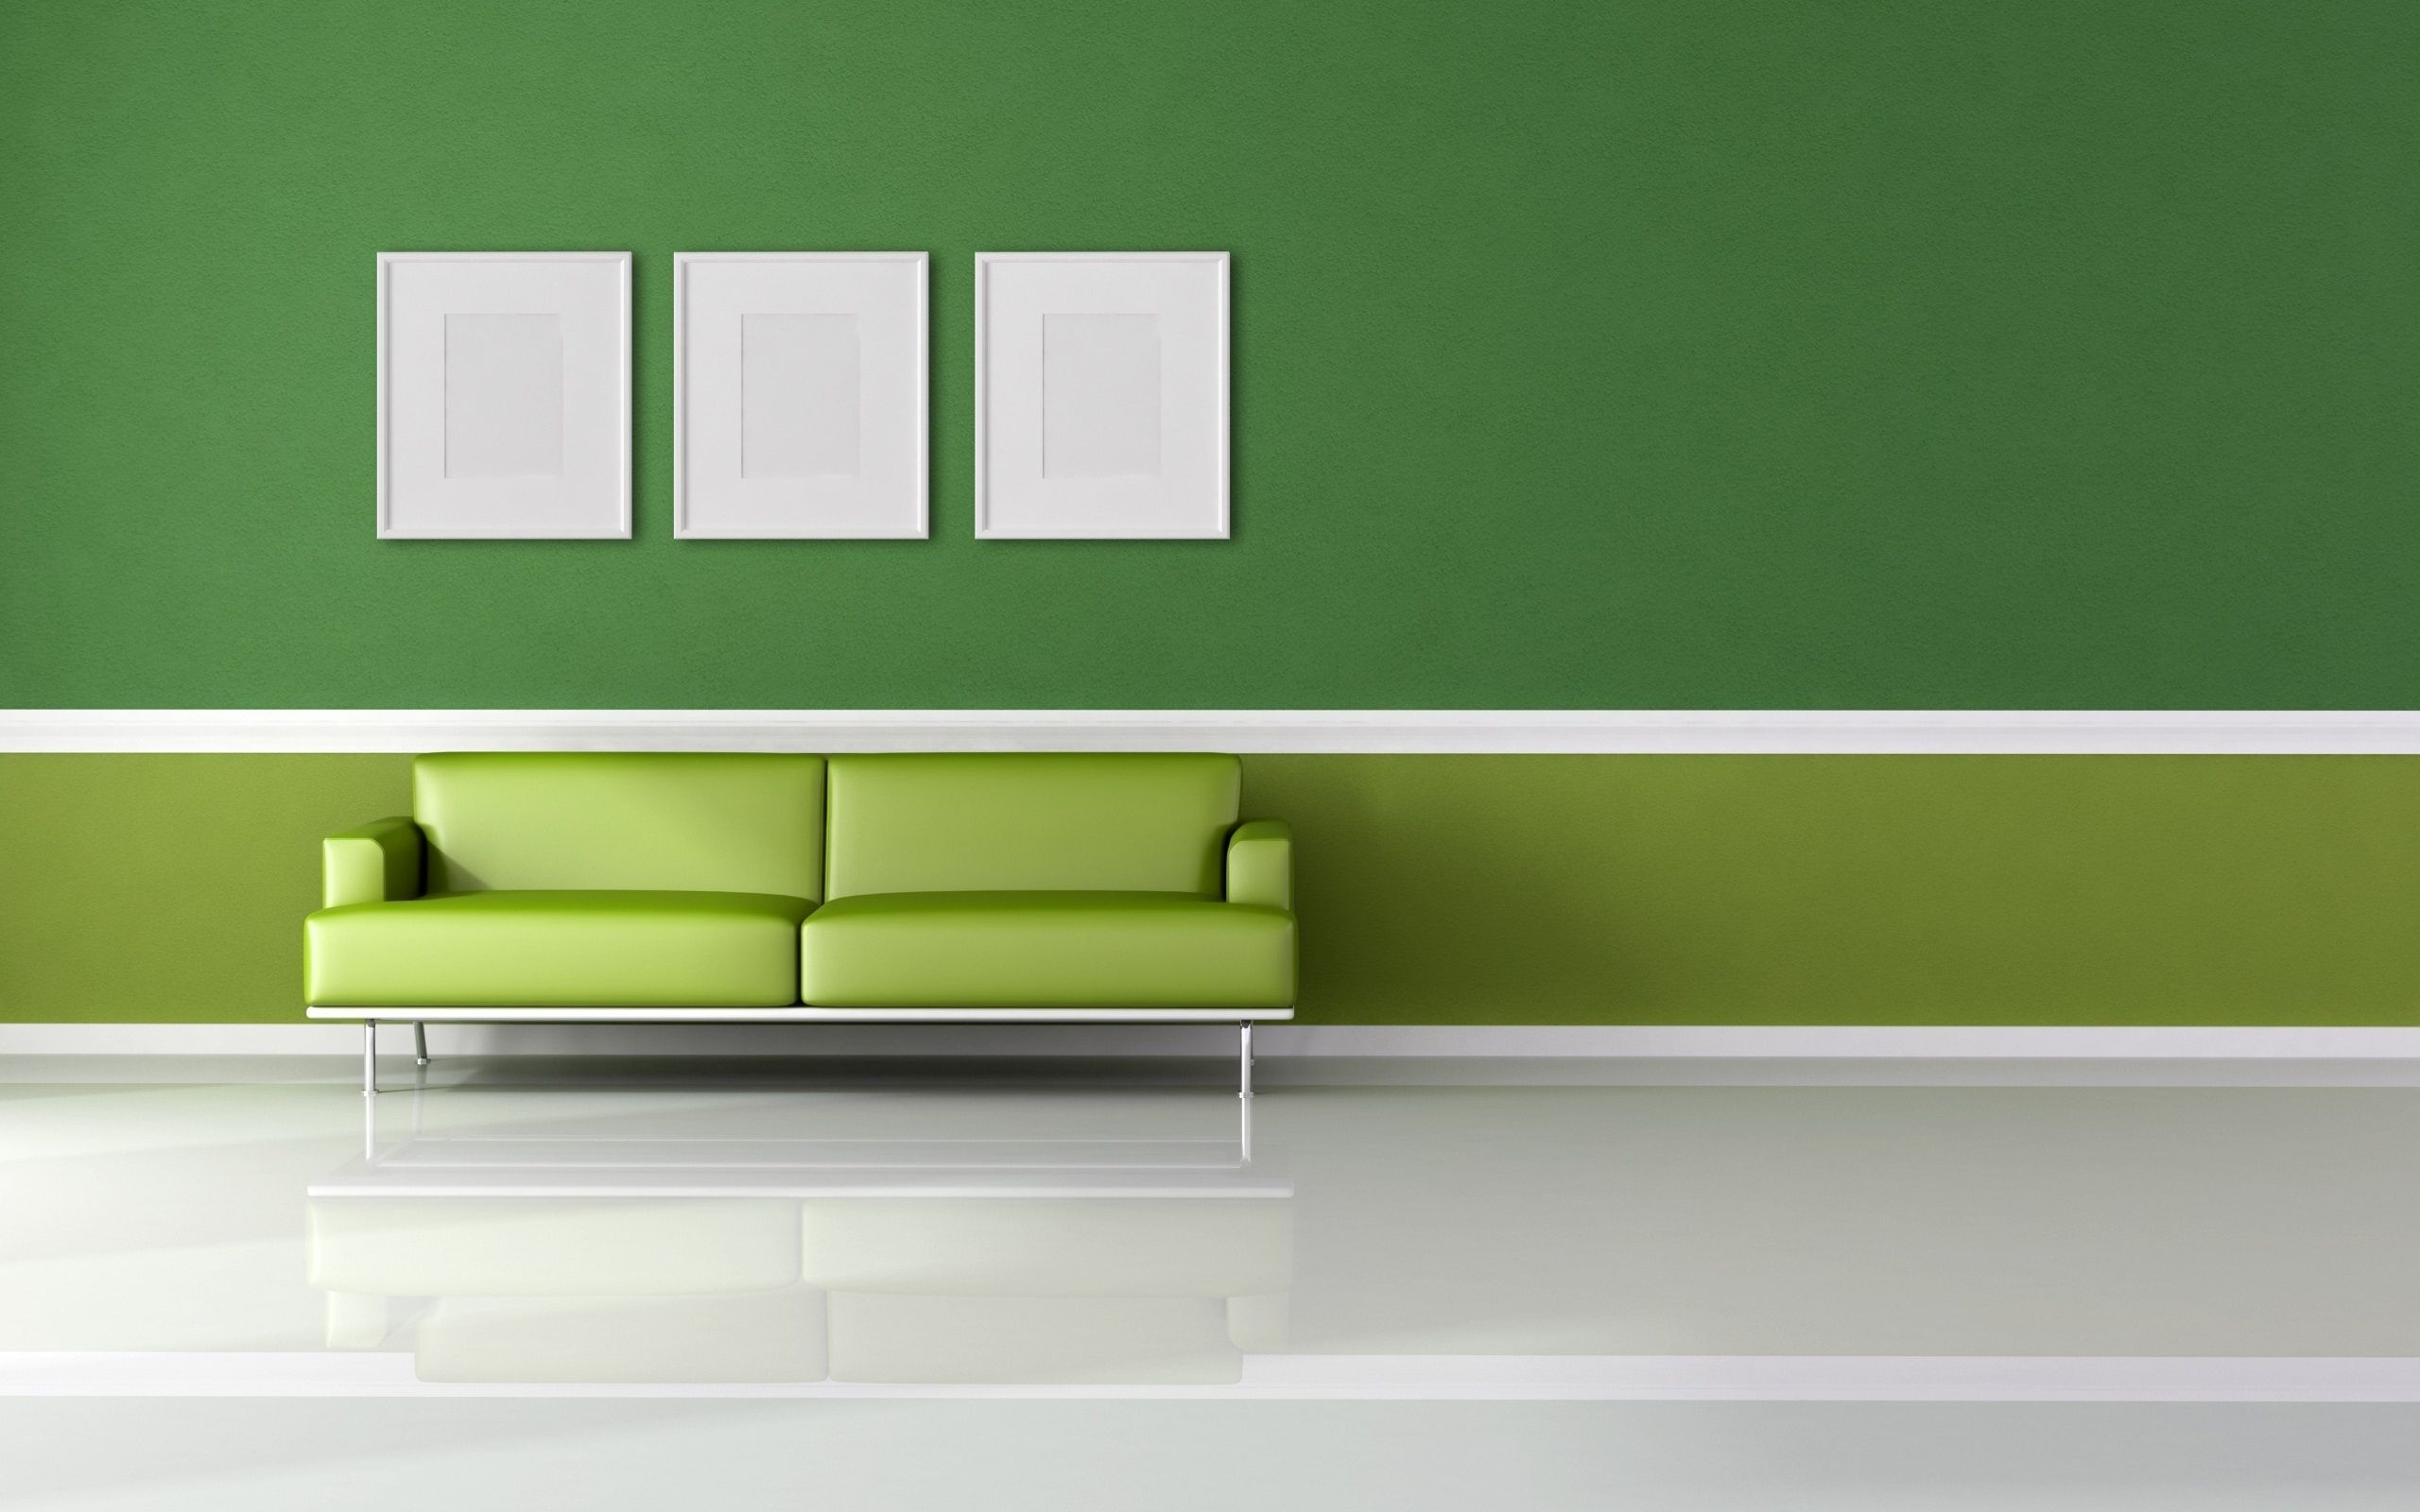 interior wall images